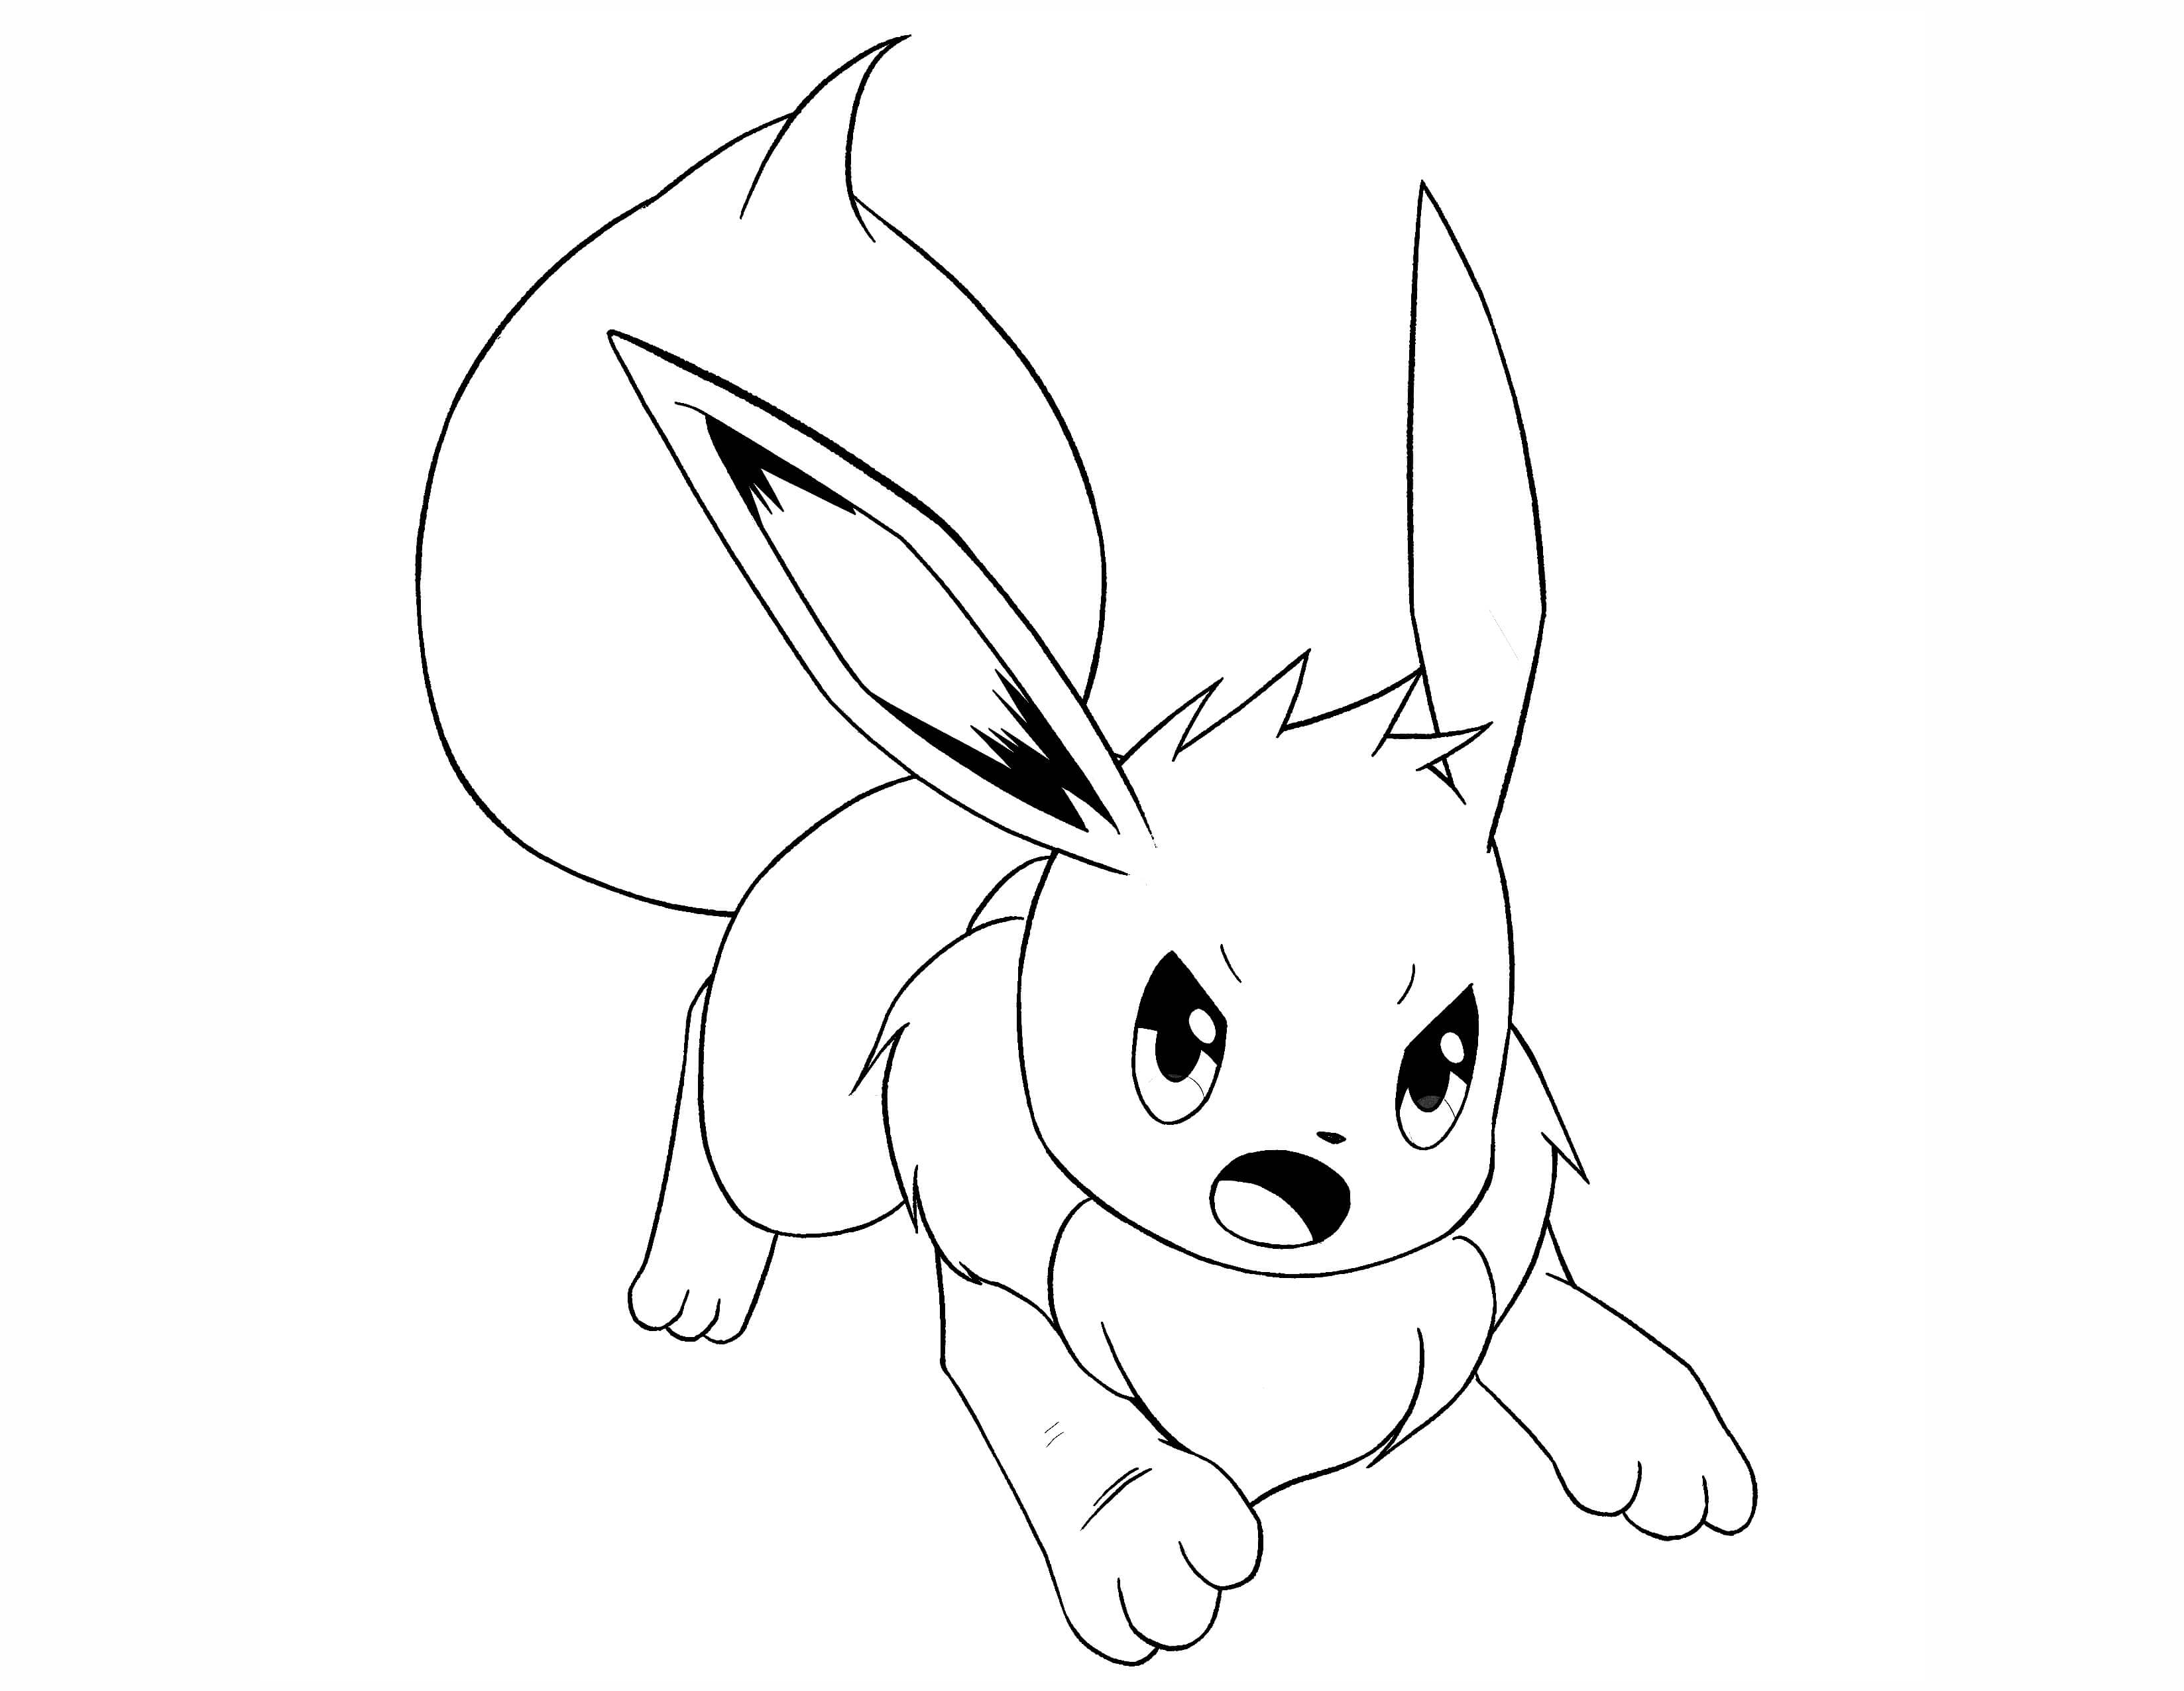 eevee coloring sheets eevee coloring pages to download and print for free coloring eevee sheets